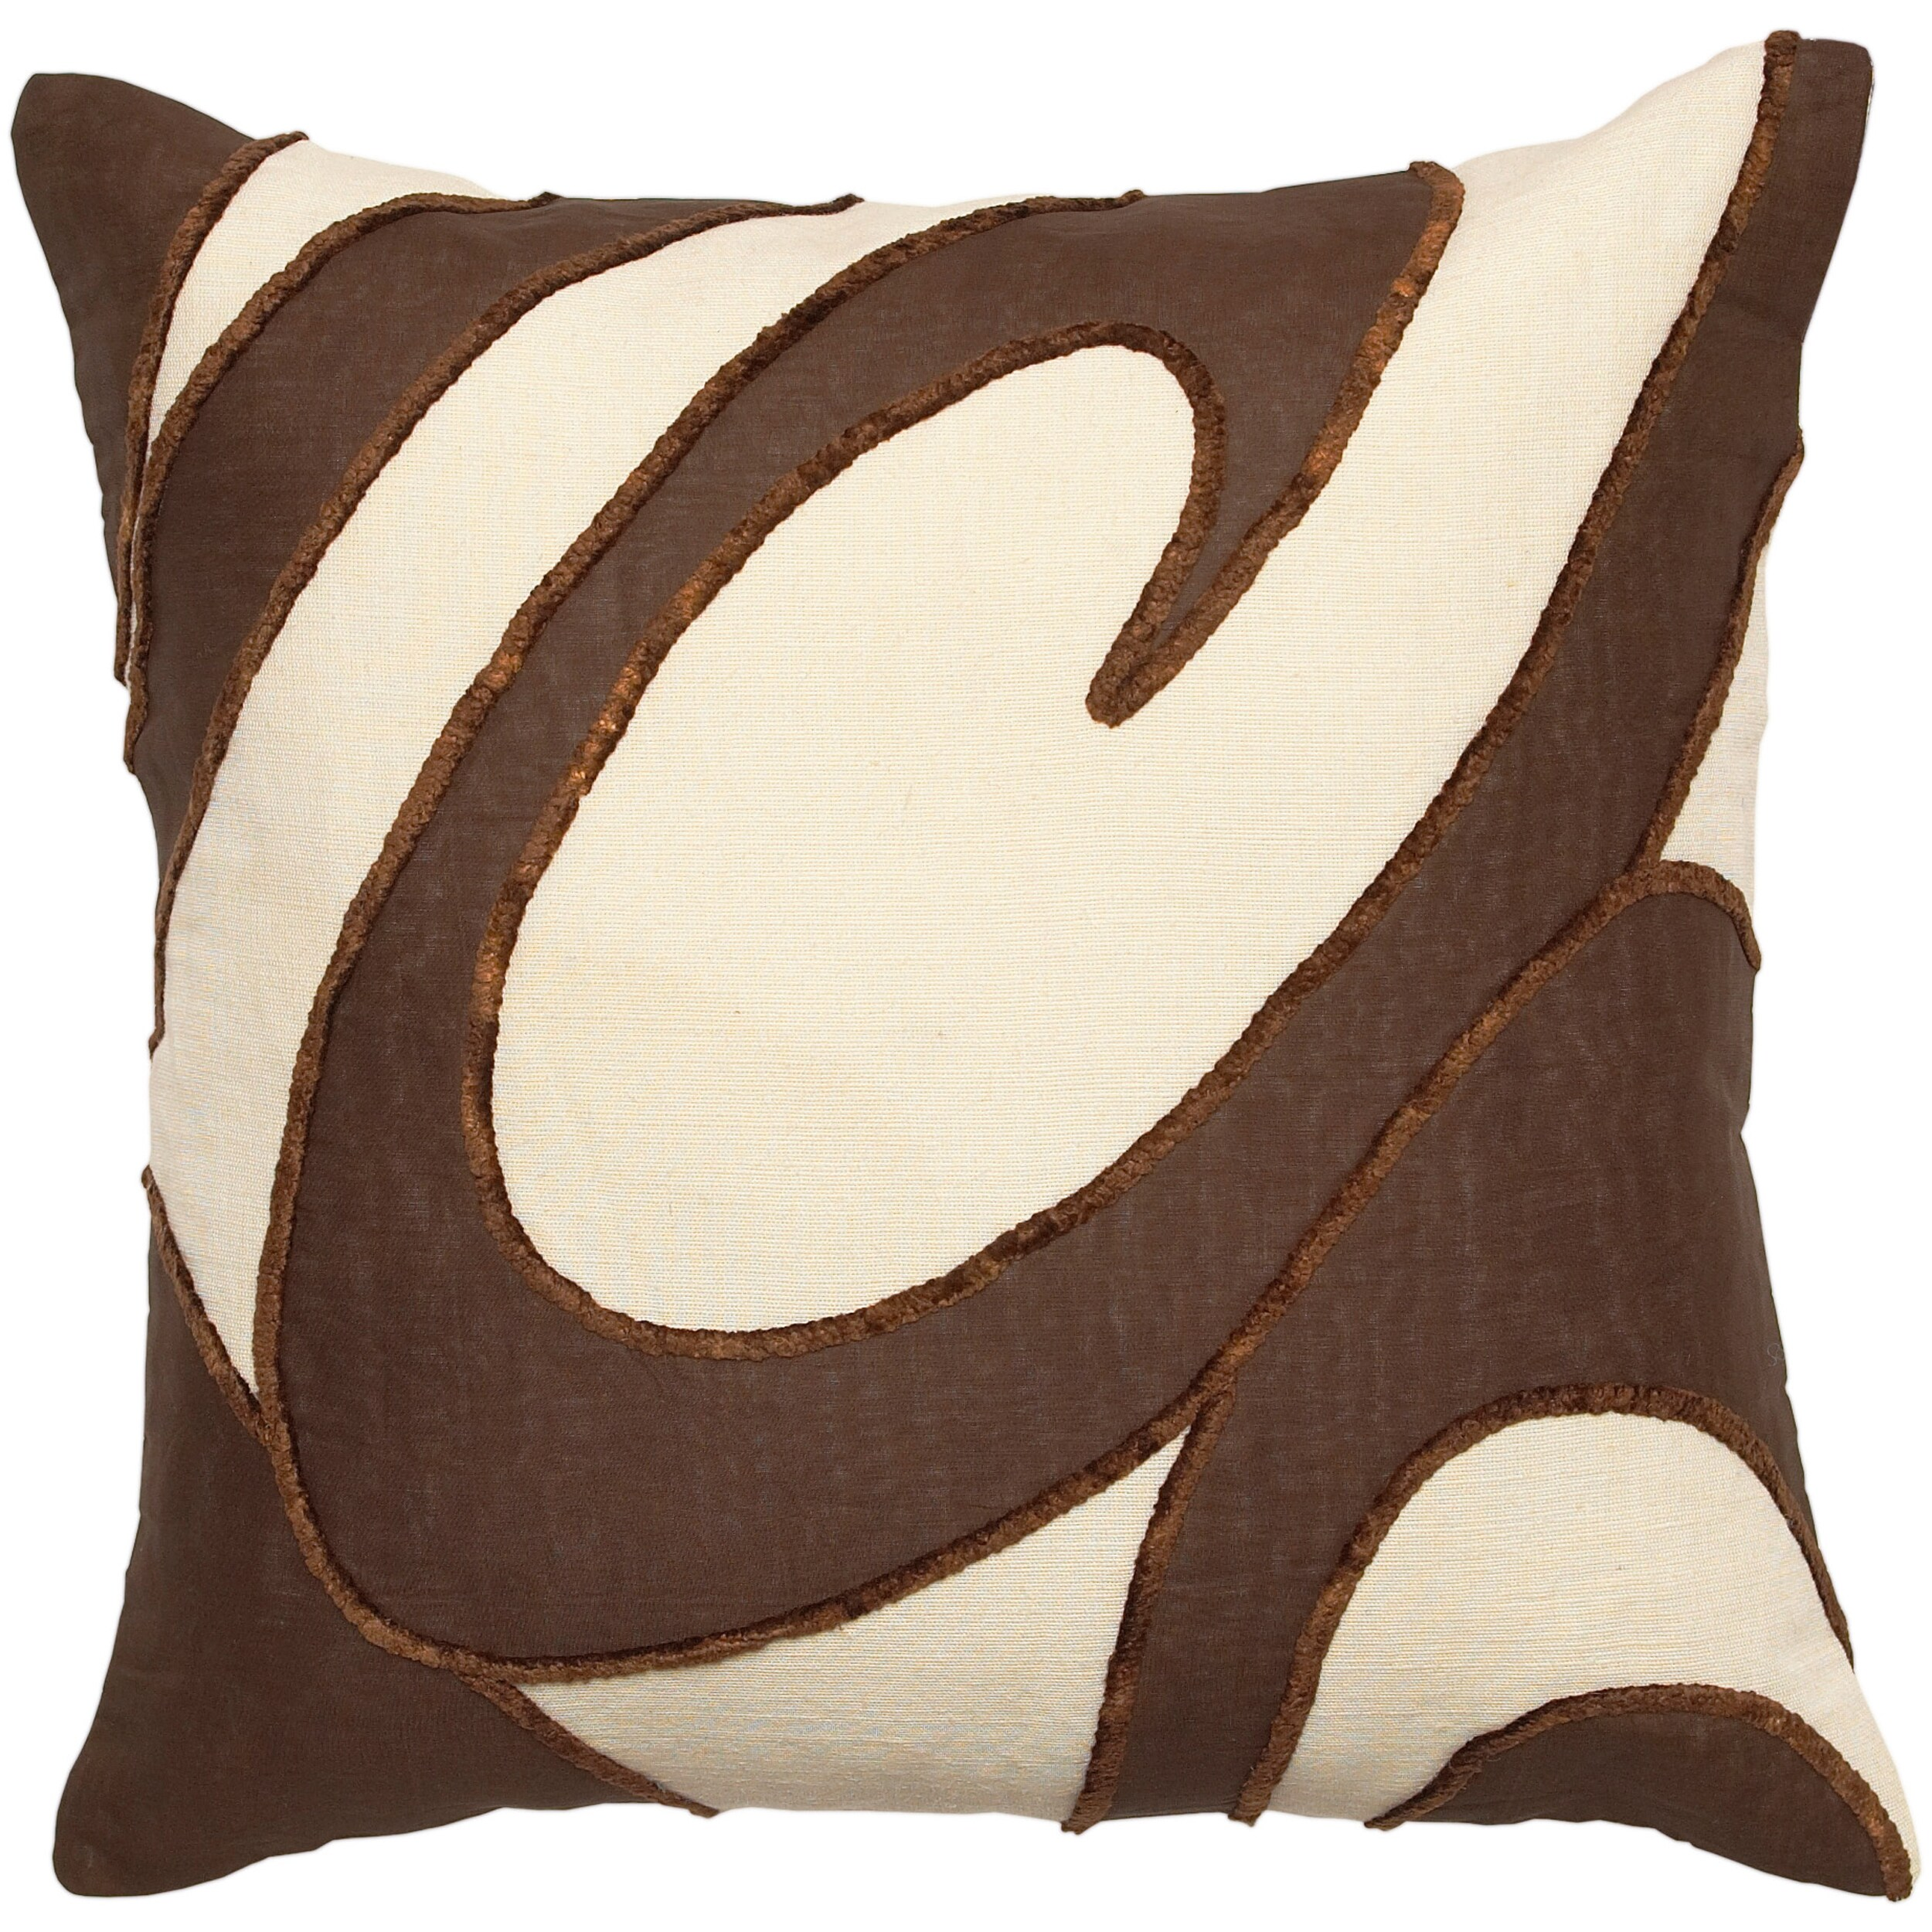 Decorative Cream Pillows : Bouy Chocolate/ Cream Decorative Pillow - 14024782 - Overstock.com Shopping - Great Deals on ...